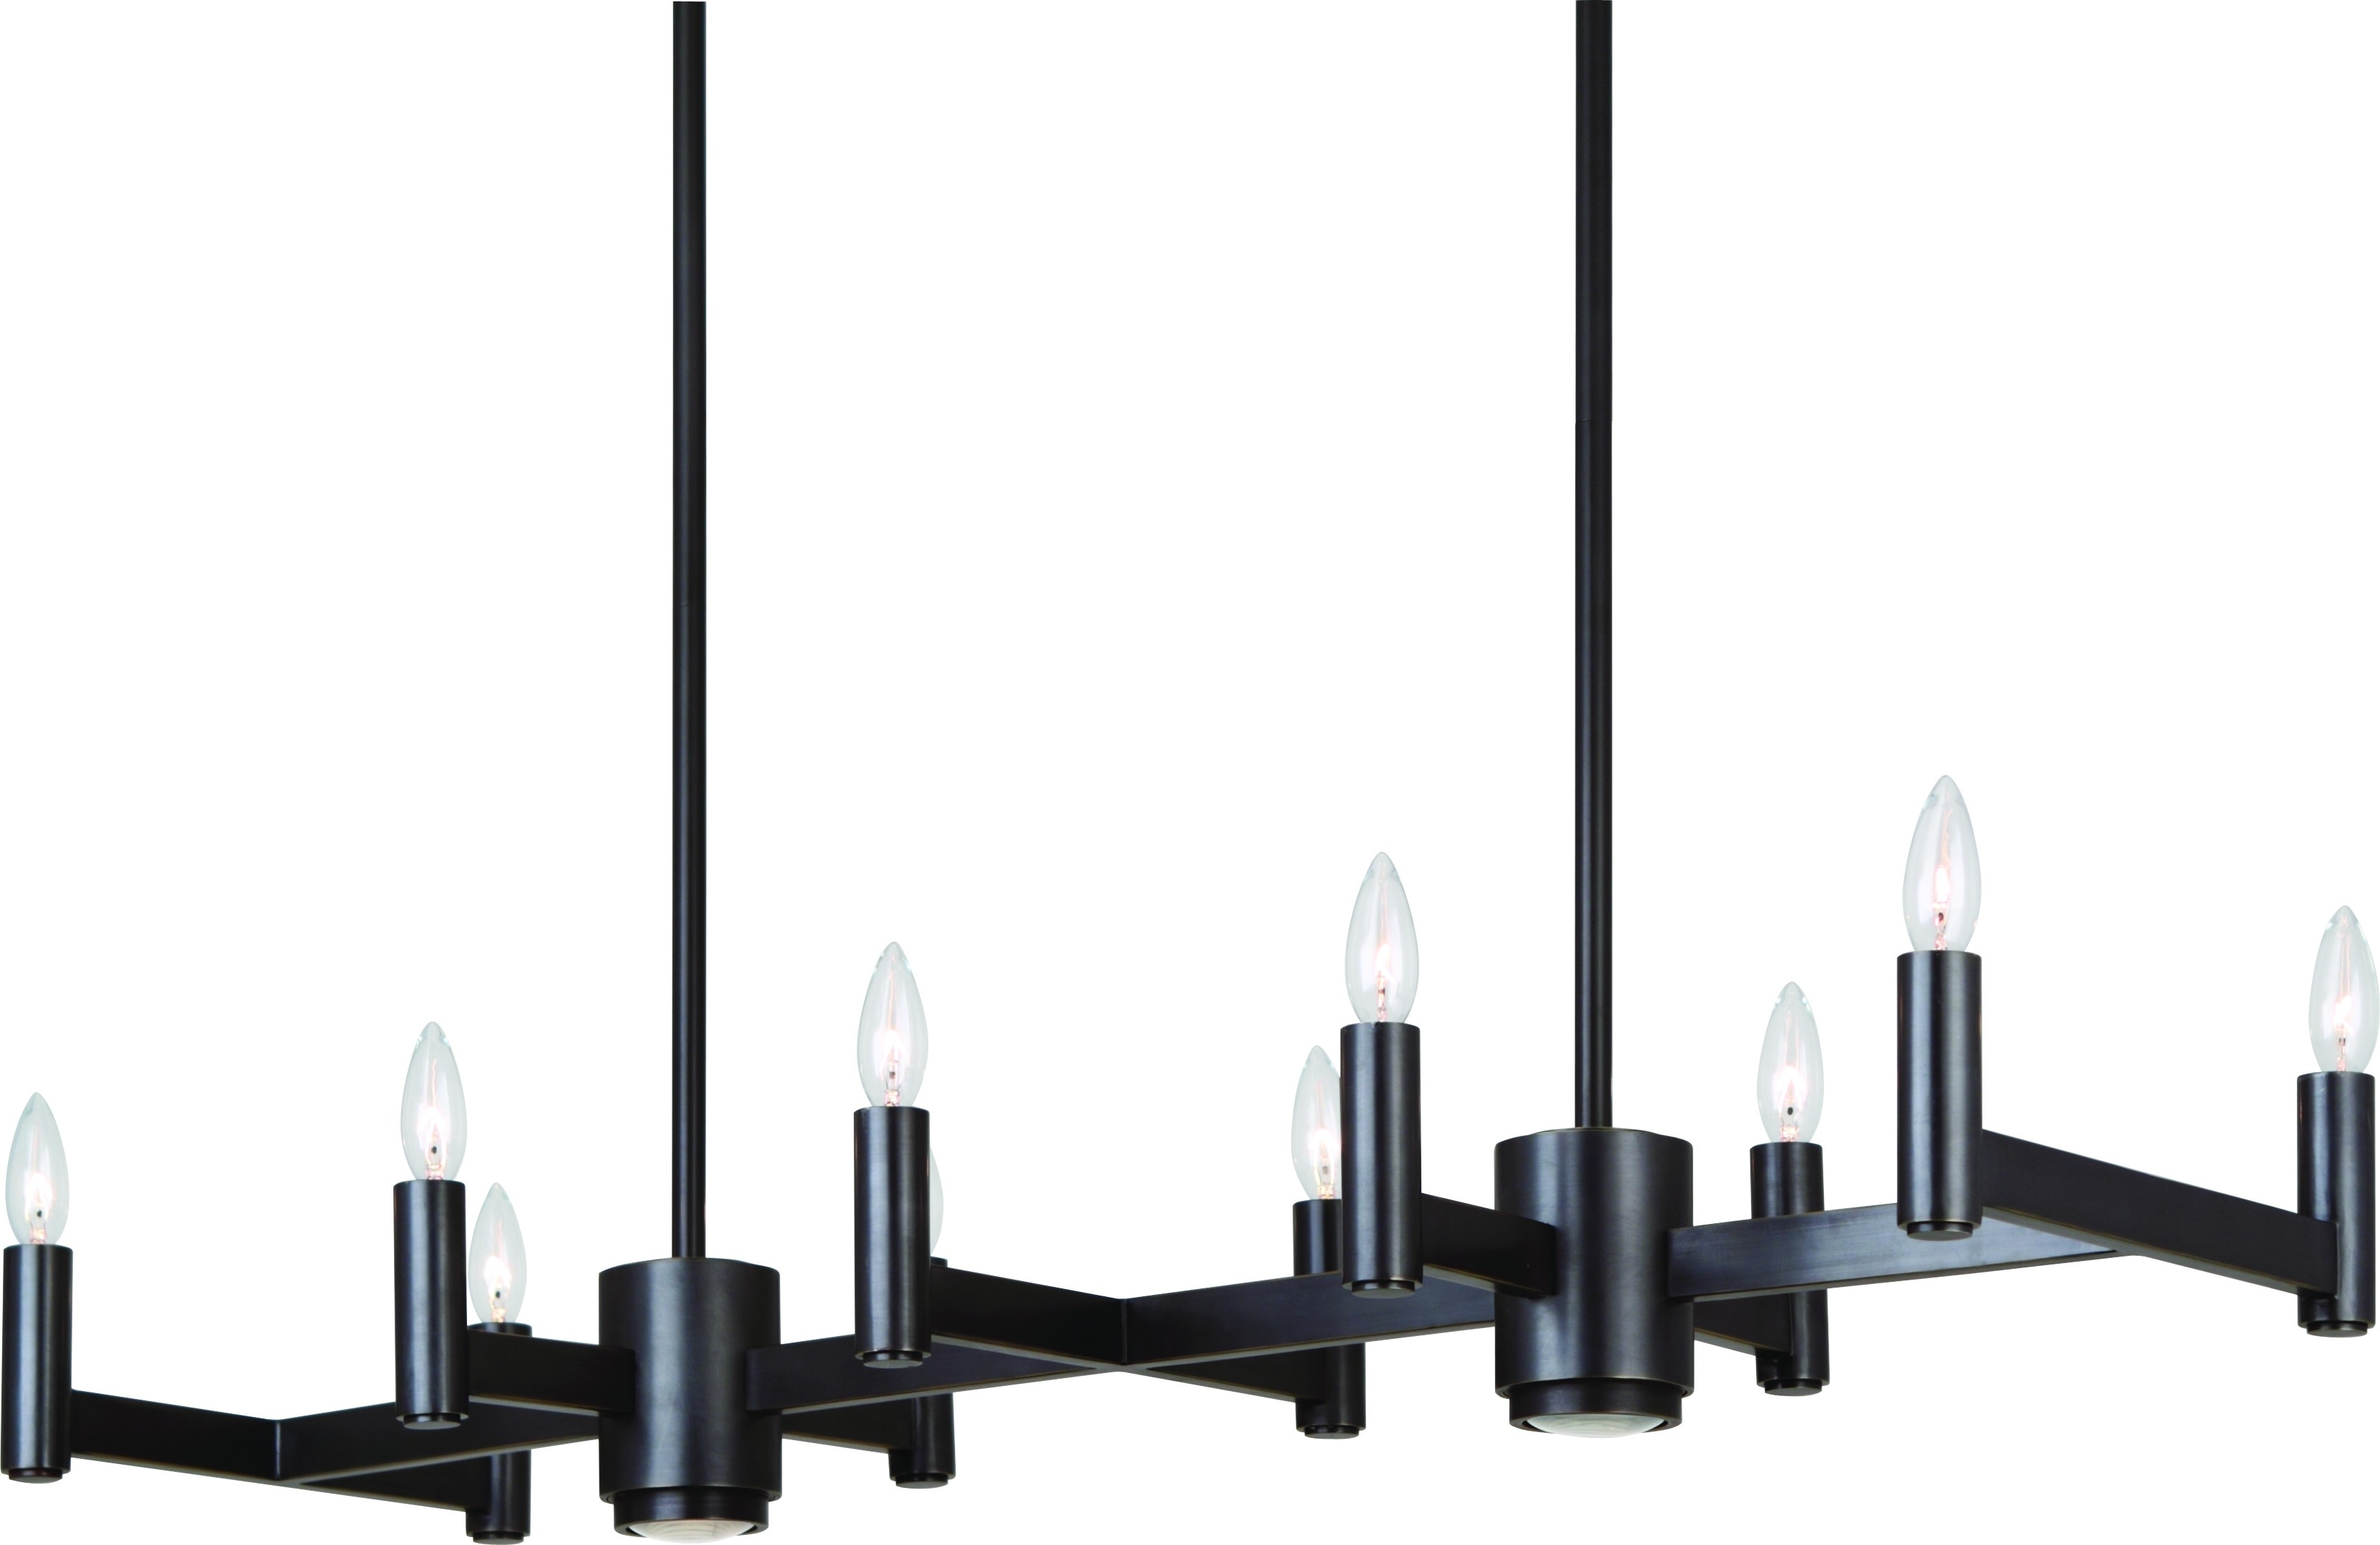 Most Recently Released Hanging Rectangular Modern Black Wrought Iron Chandeliers With Lamp Regarding Modern Wrought Iron Chandeliers (View 2 of 15)